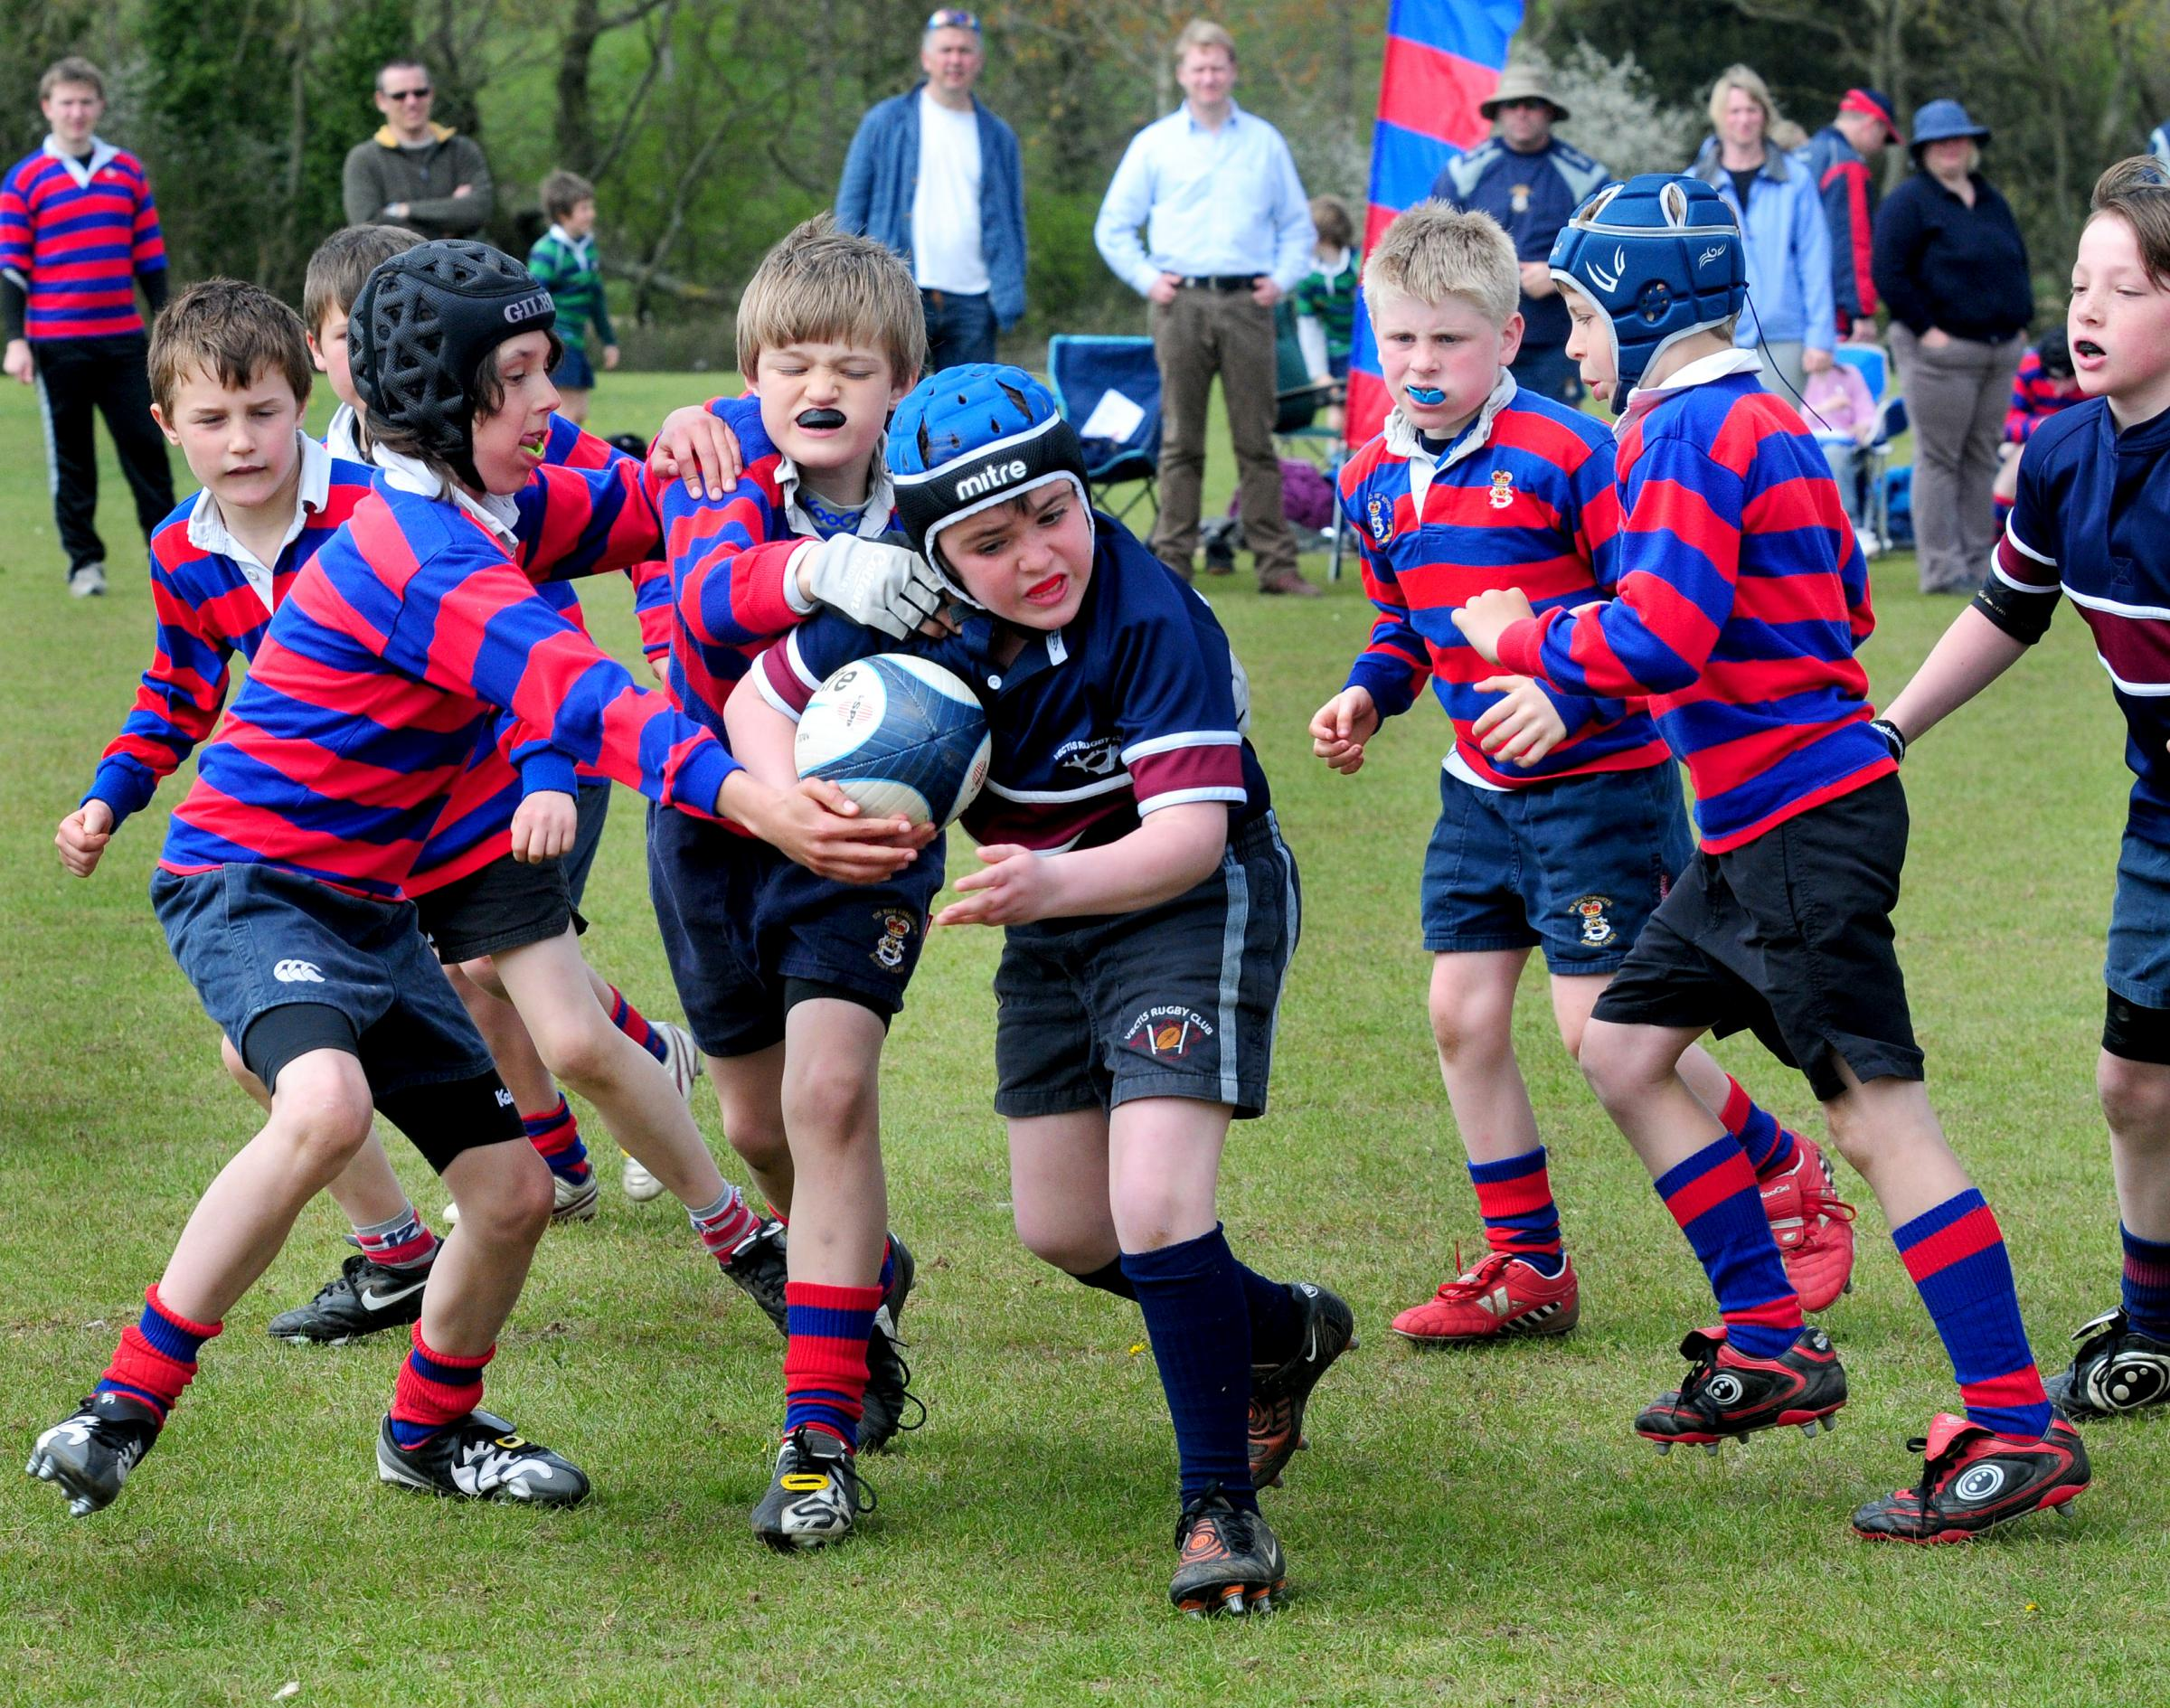 Vectis Rugby Club blasted for allowing kids to play in mini